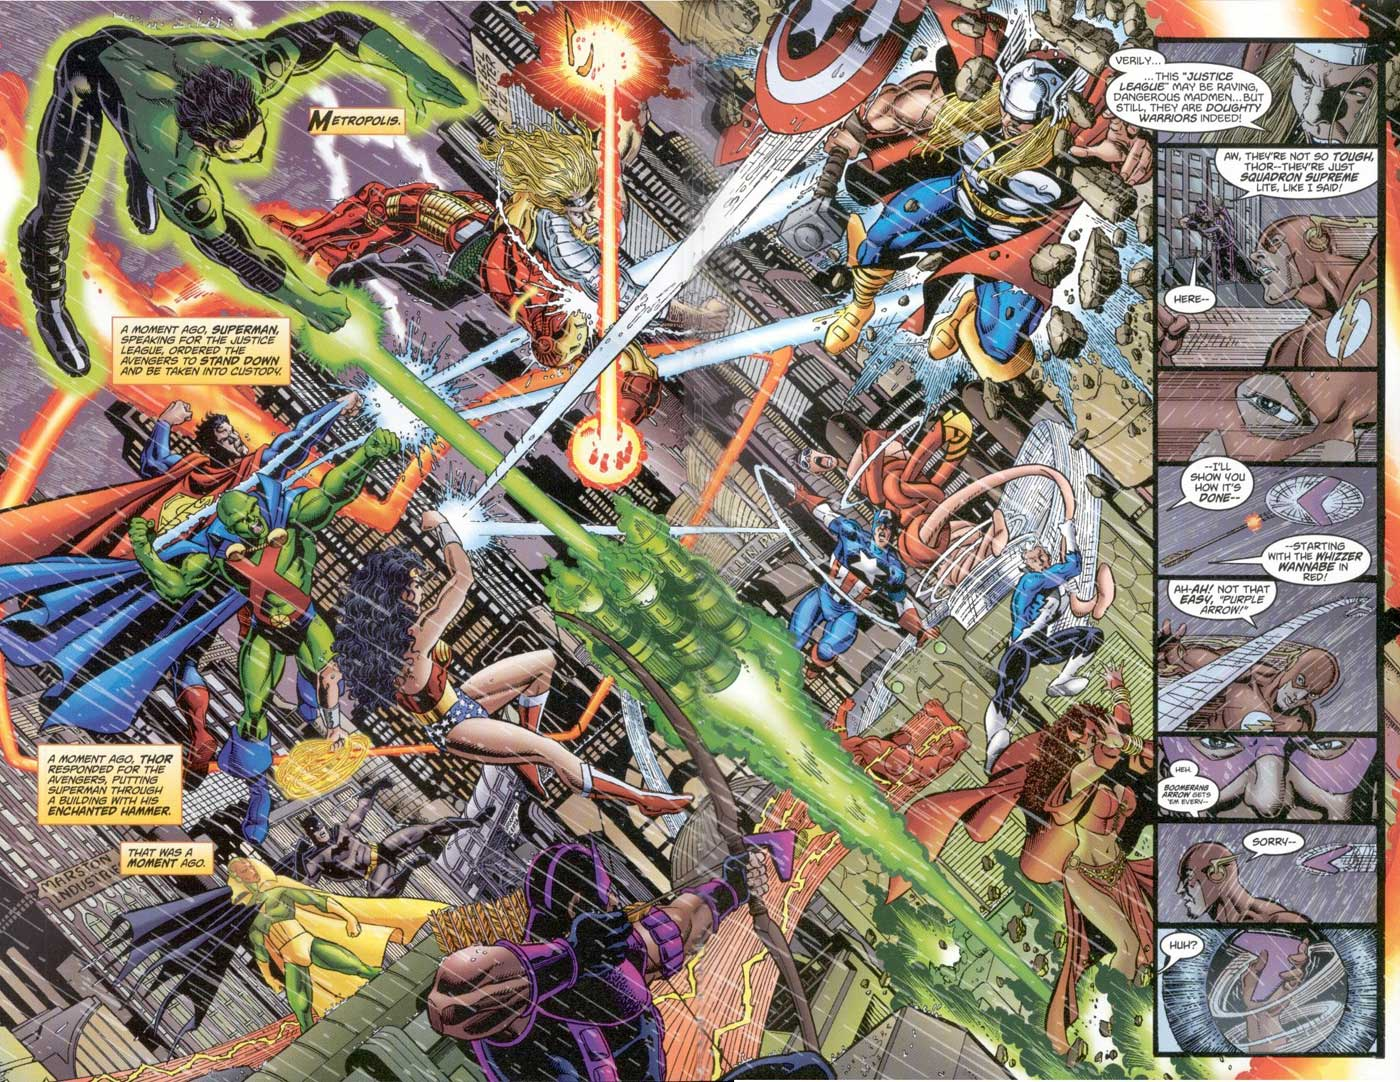 George Perez on JLA/Avengers #2